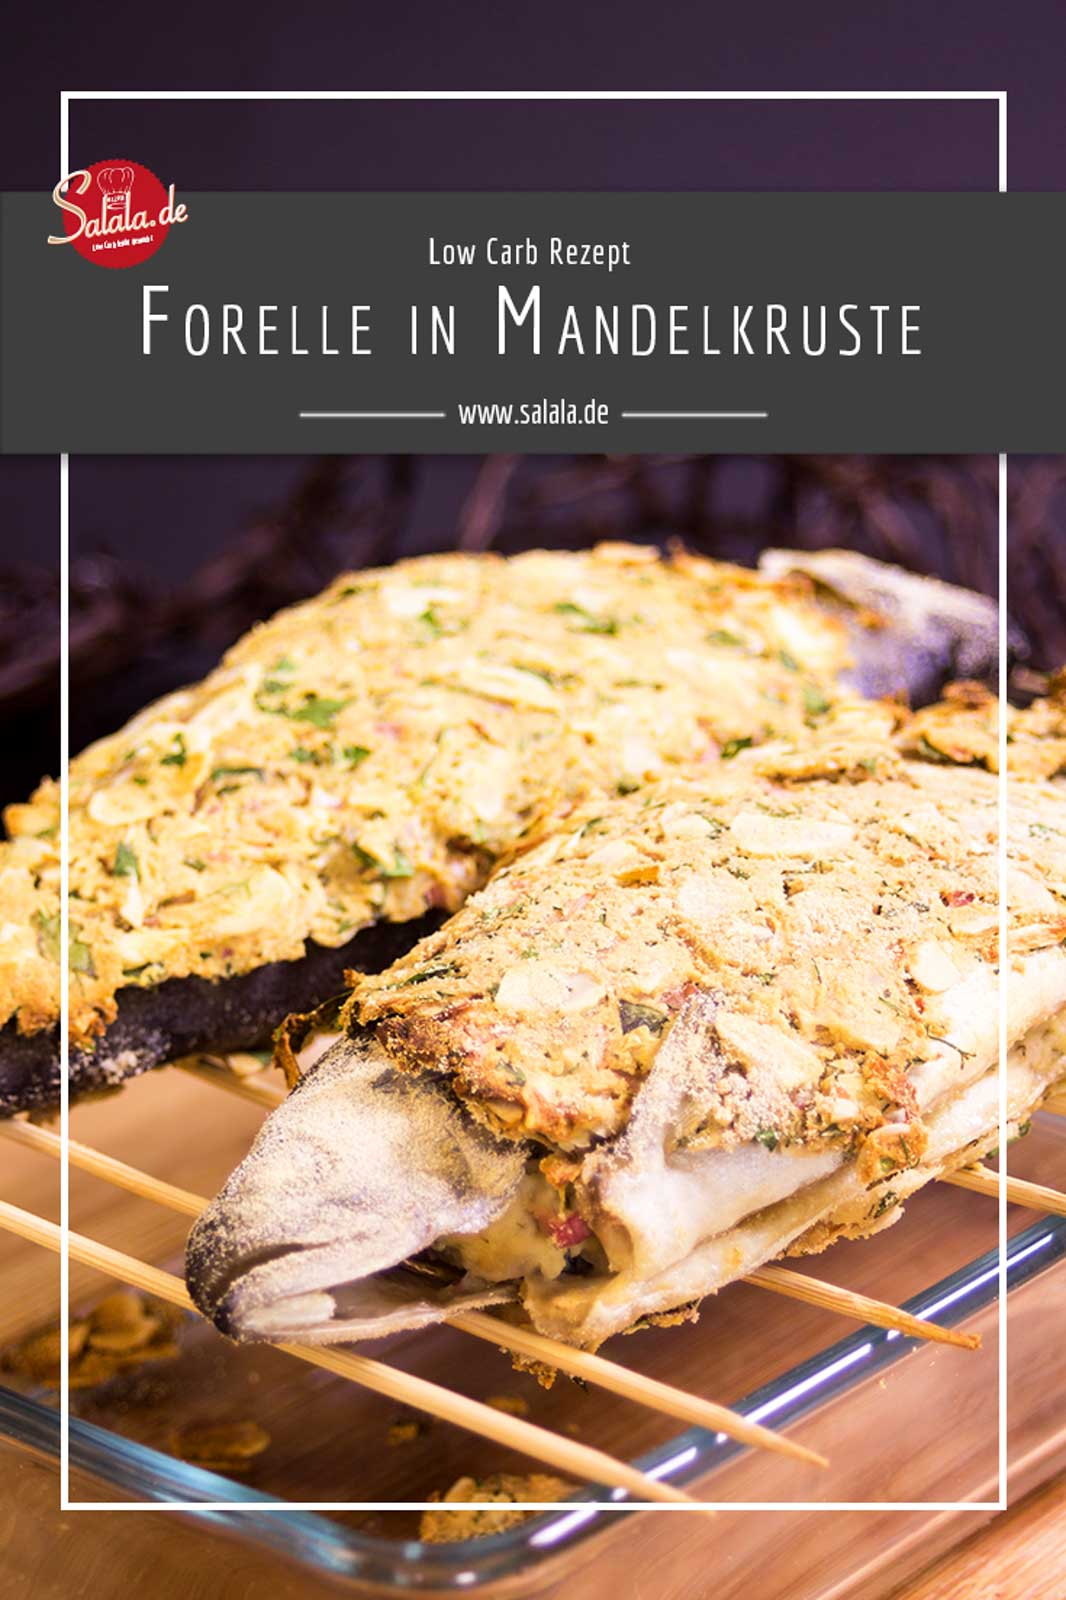 Forelle in Mandelkruste I Low Carb Rezept I Game of Thrones Special  #fischrezepte #lowcarbrezepte #gameofthrones #ketorezepte #lowcarbpanade